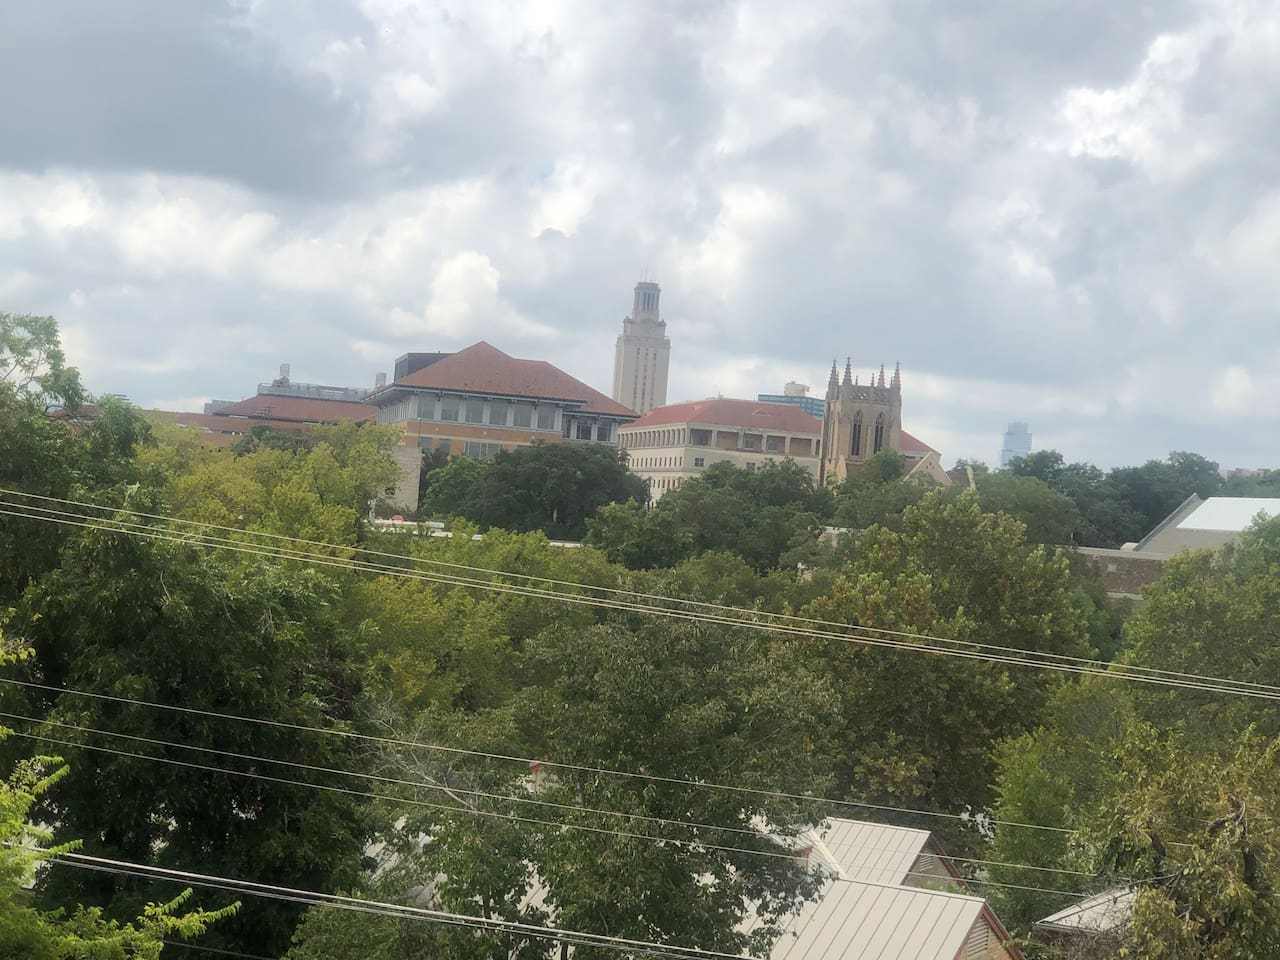 Great view of the UT clock tower.